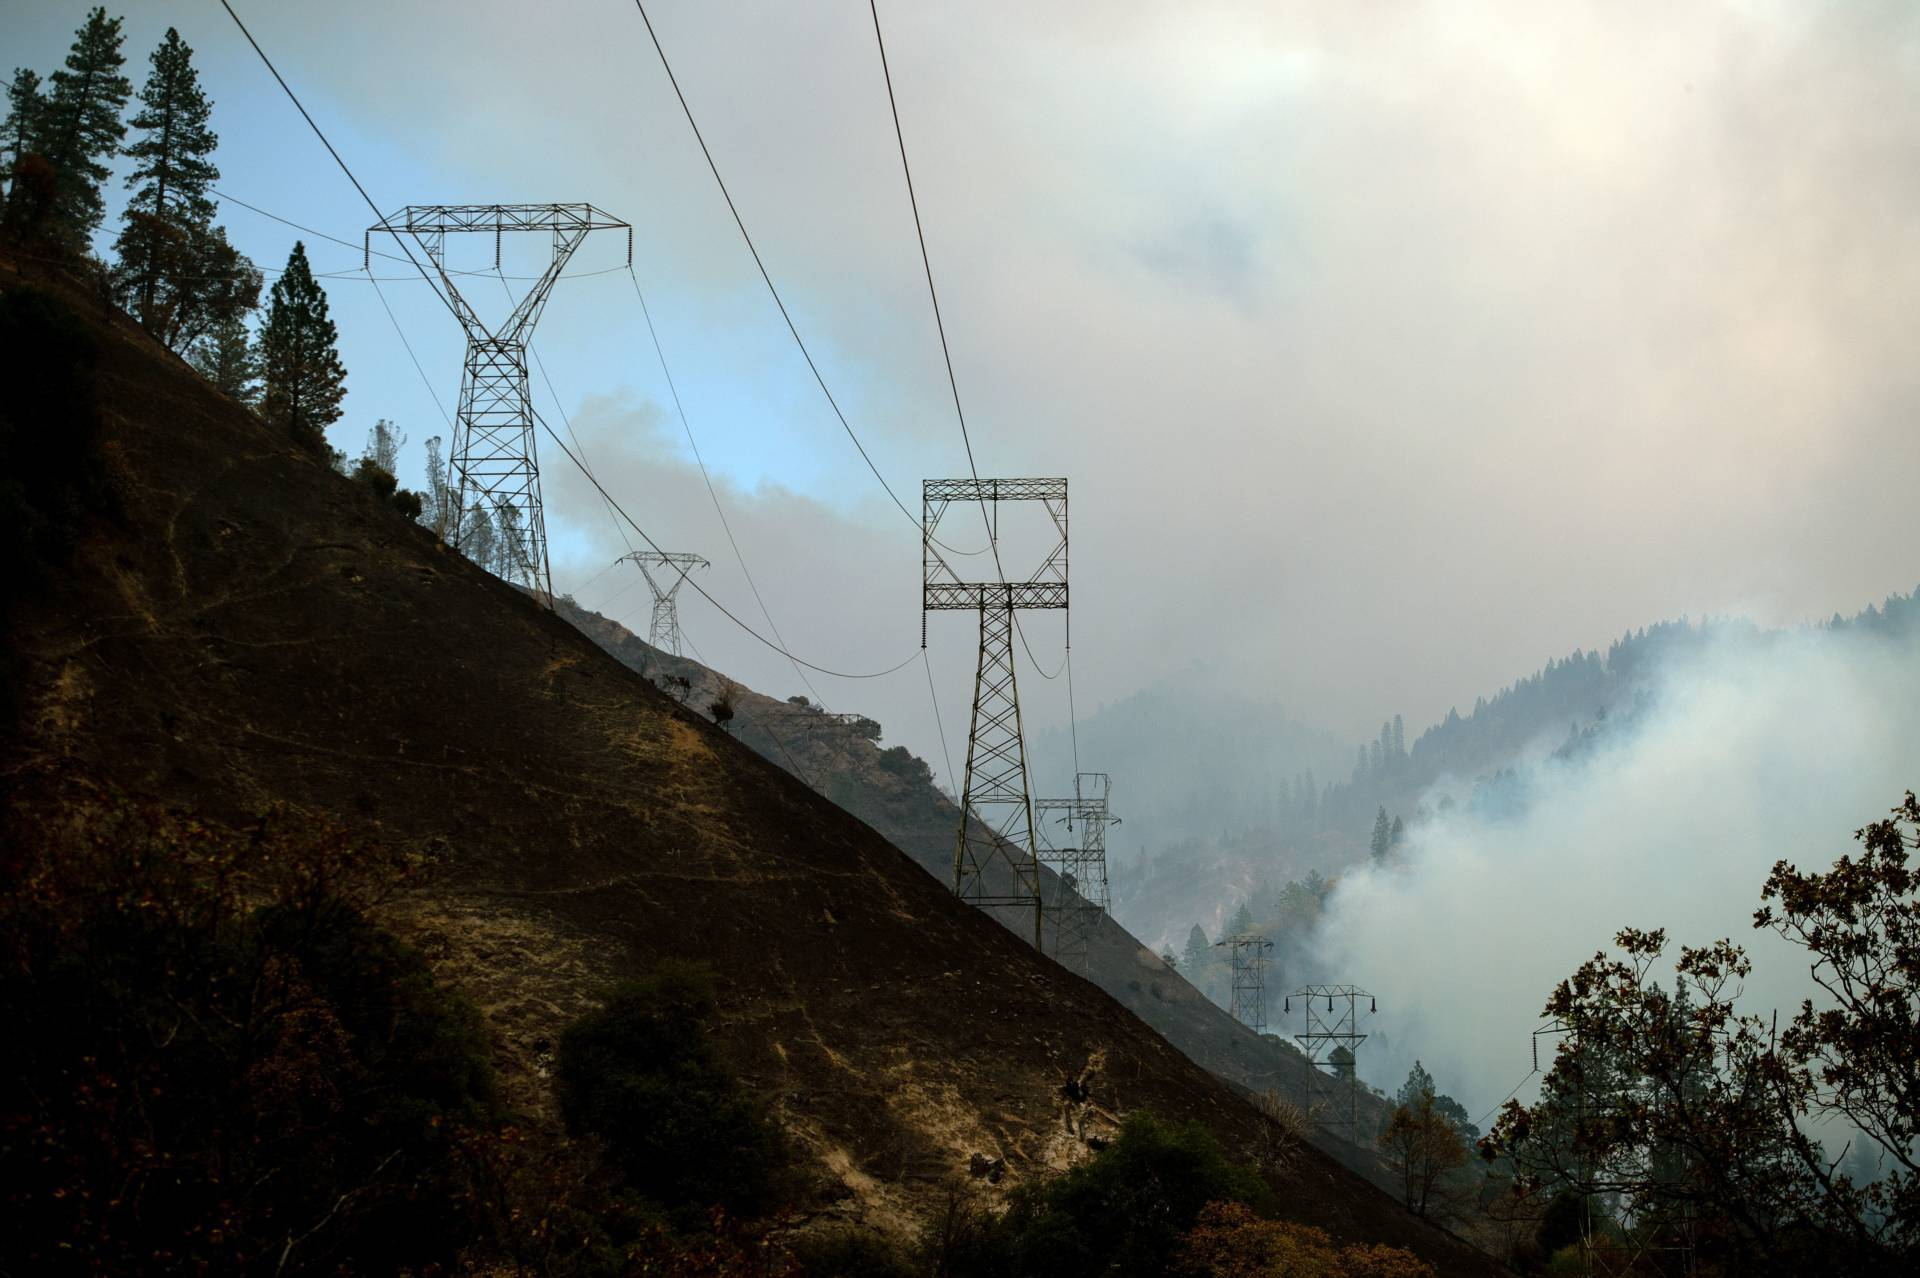 PG&E transmission  towers on the Caribou-Palermo line are seen against a smoky landscape adjacent to the Feather River in Butte County last November. The towers are close to the spot where officials say the Camp Fire began. Josh Edelson/AFP-Getty Images